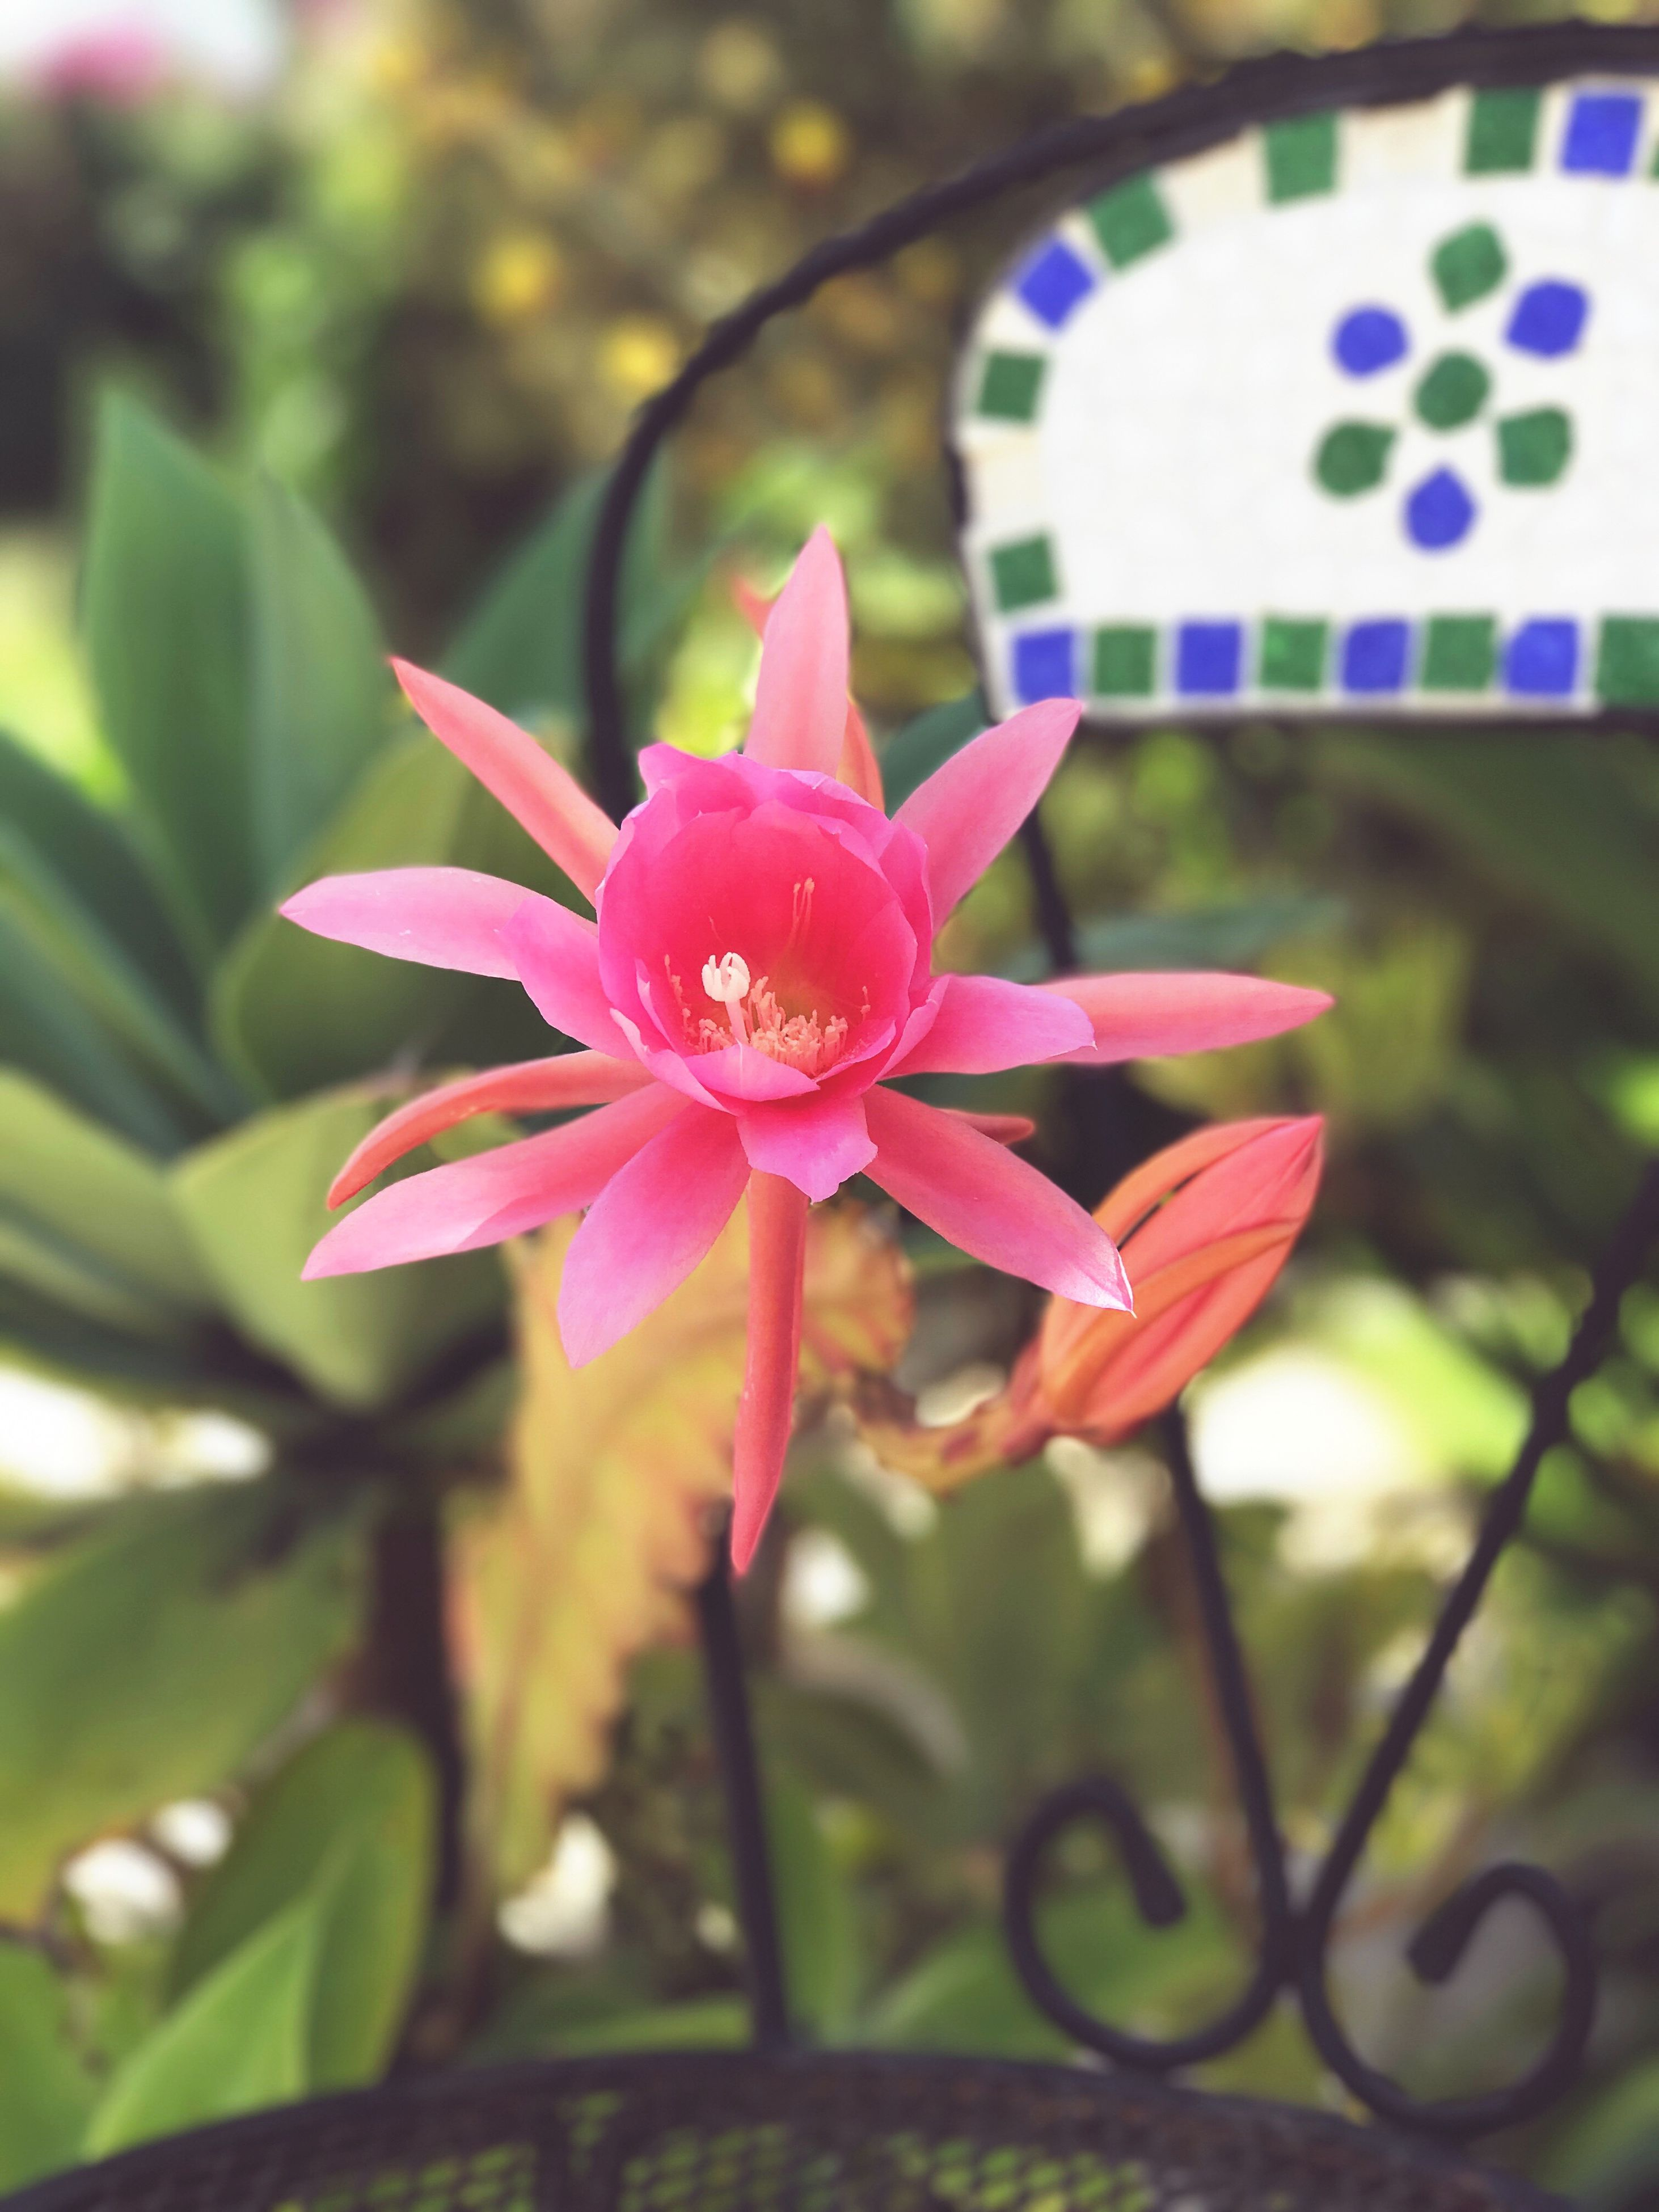 pink color, petal, flower, beauty in nature, fragility, growth, nature, flower head, close-up, no people, freshness, plant, blooming, day, outdoors, water